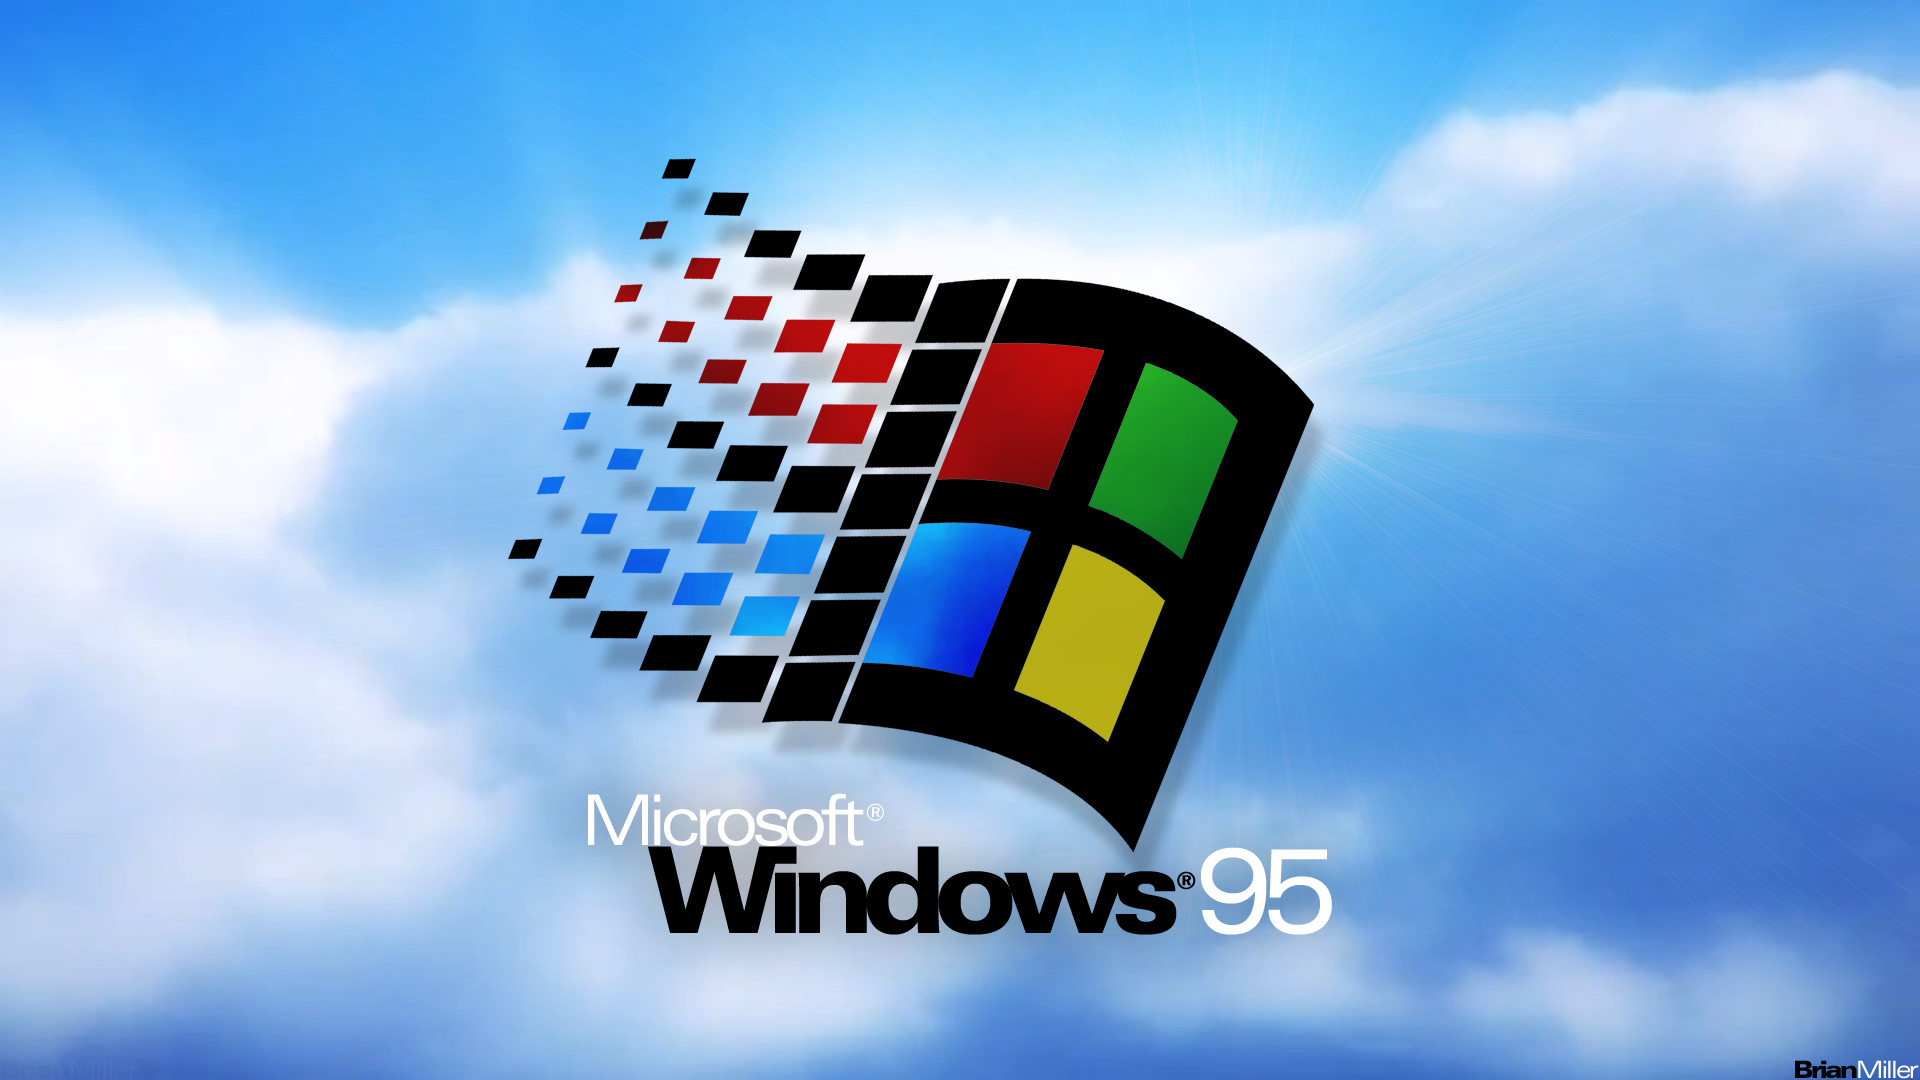 Windows 95 Wallpaper  67  images  1920x1080 post 360412 0 03818100 1366521768 png